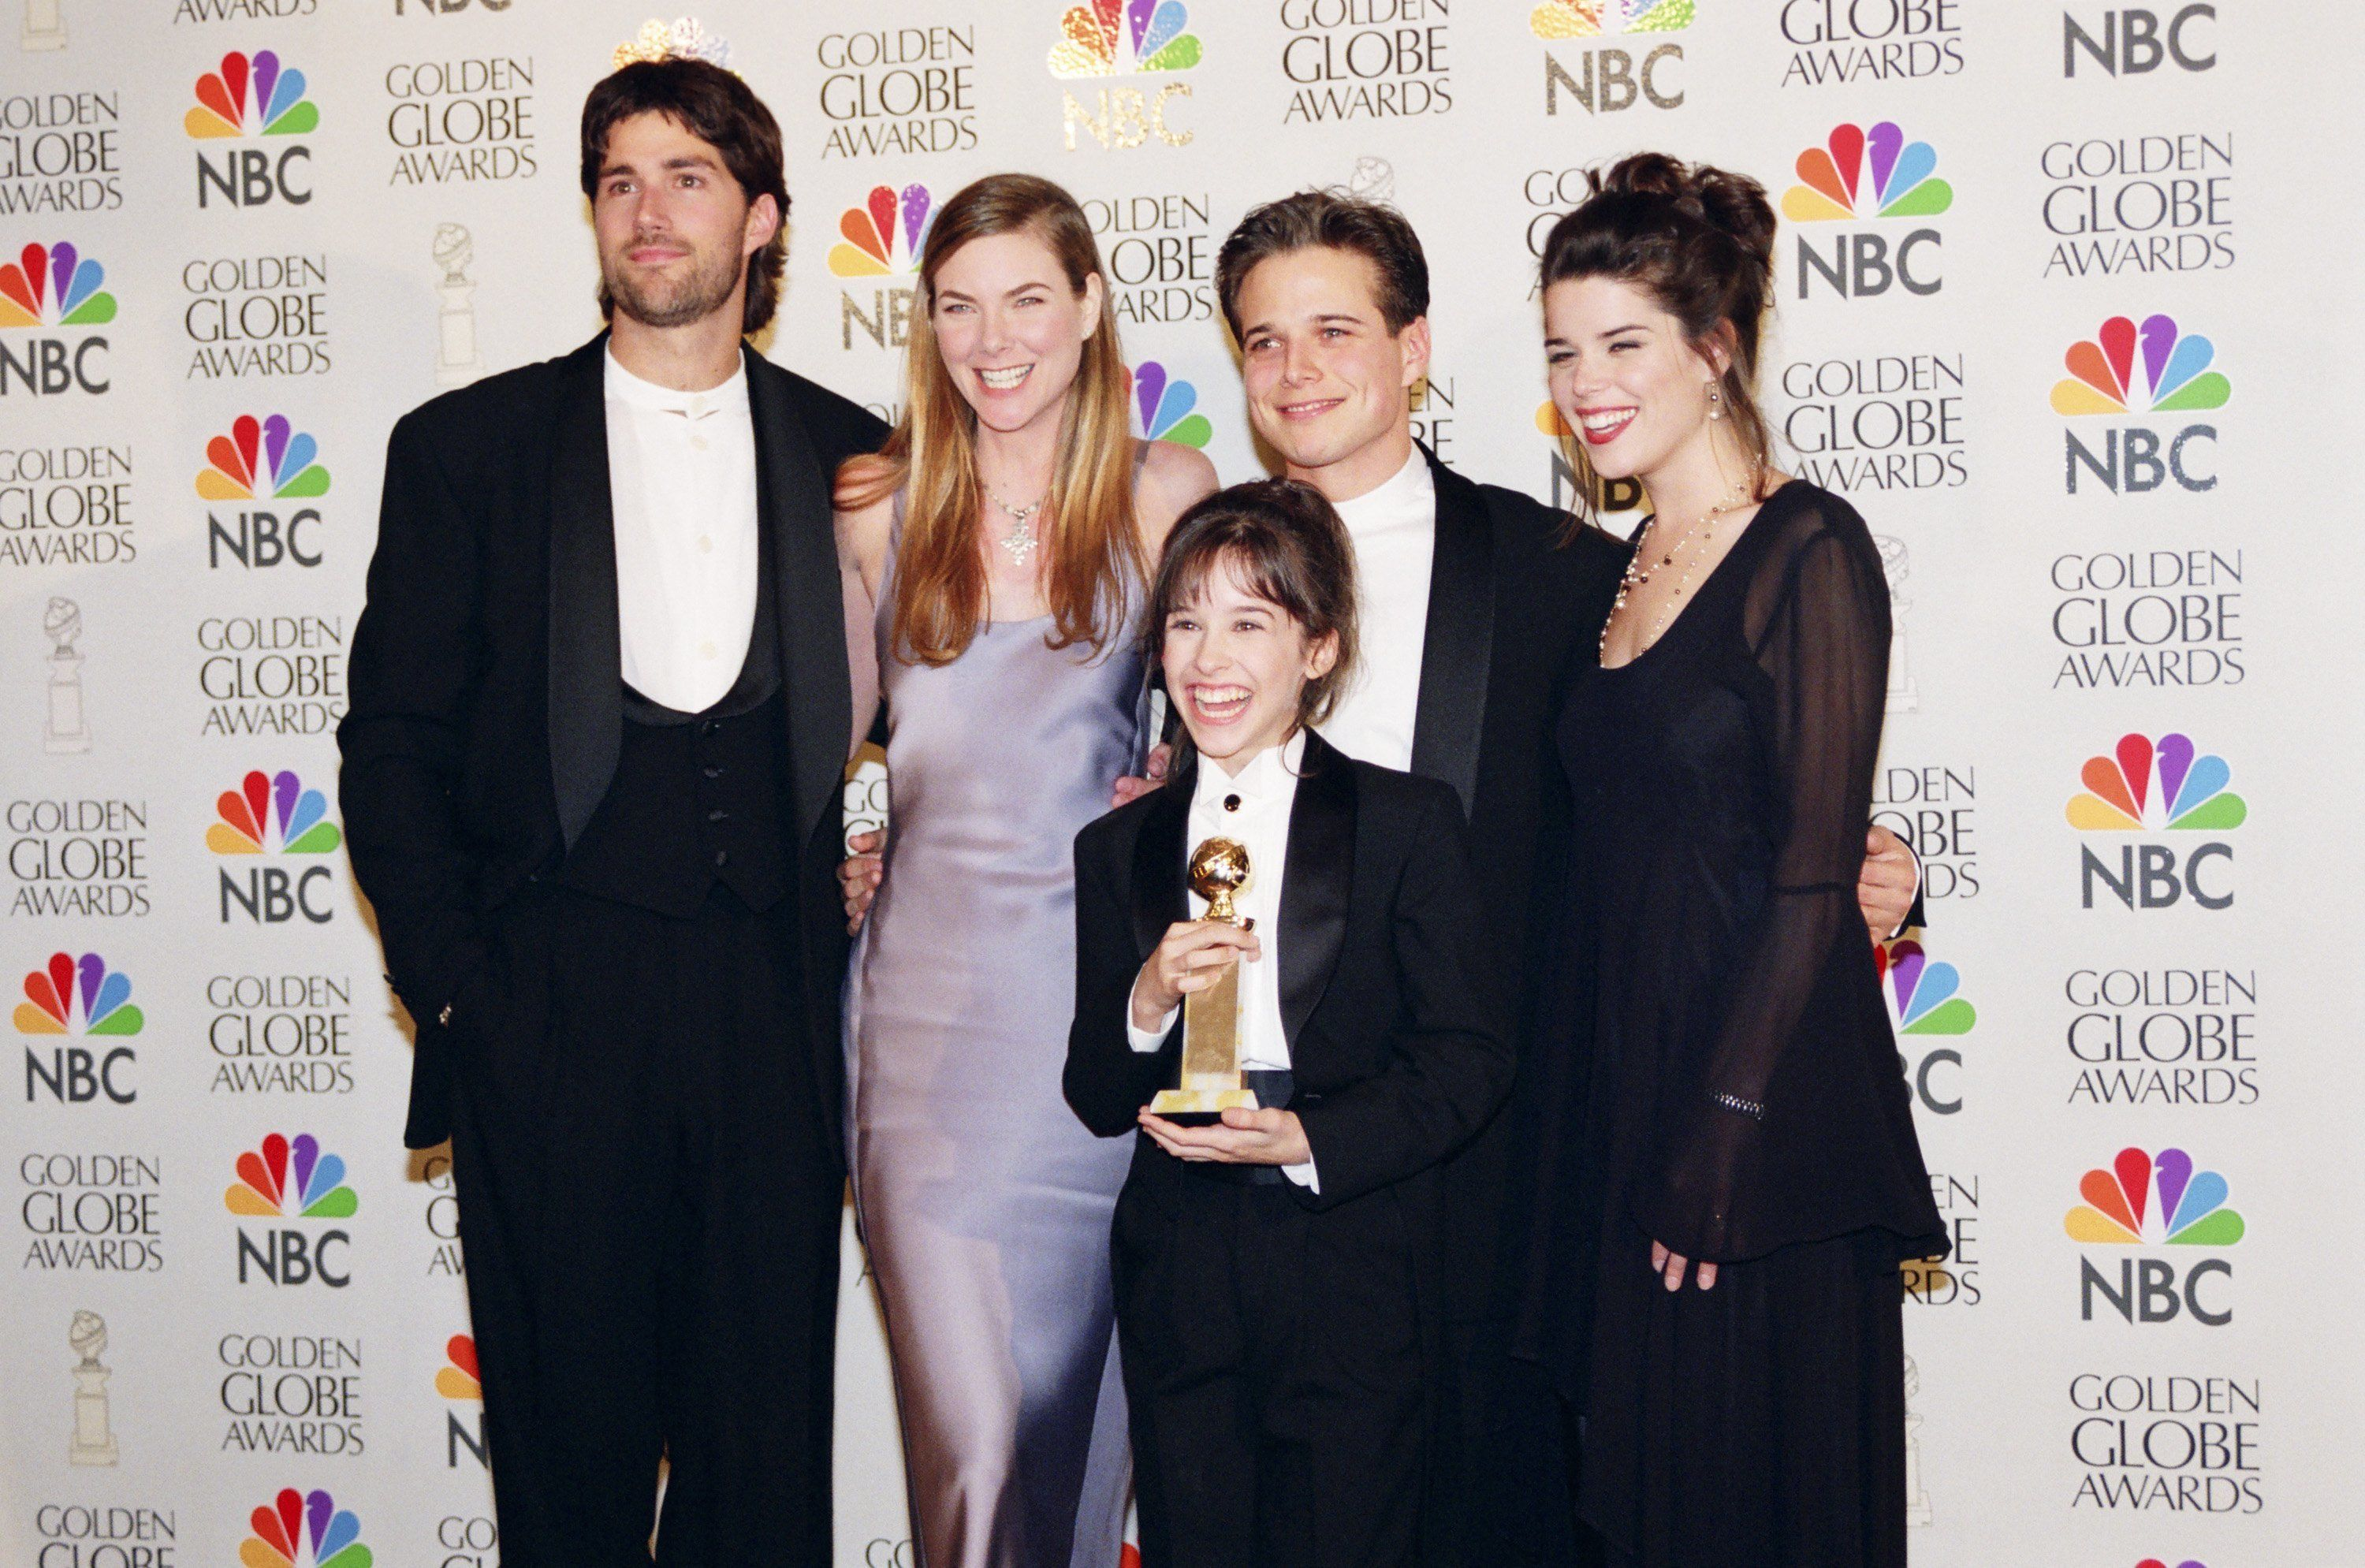 53RD ANNUAL GOLDEN GLOBE AWARDS -- Pictured: (l-r) Golden Globe winners for best Television Series - Drama the cast of Party of Five in the photo room during the 53rd Annual Golden Globe Awards held at the Beverly Hilton Hotel on January 21, 1996-- Photo by: Joseph Del Valle/NBCU Photo Bank